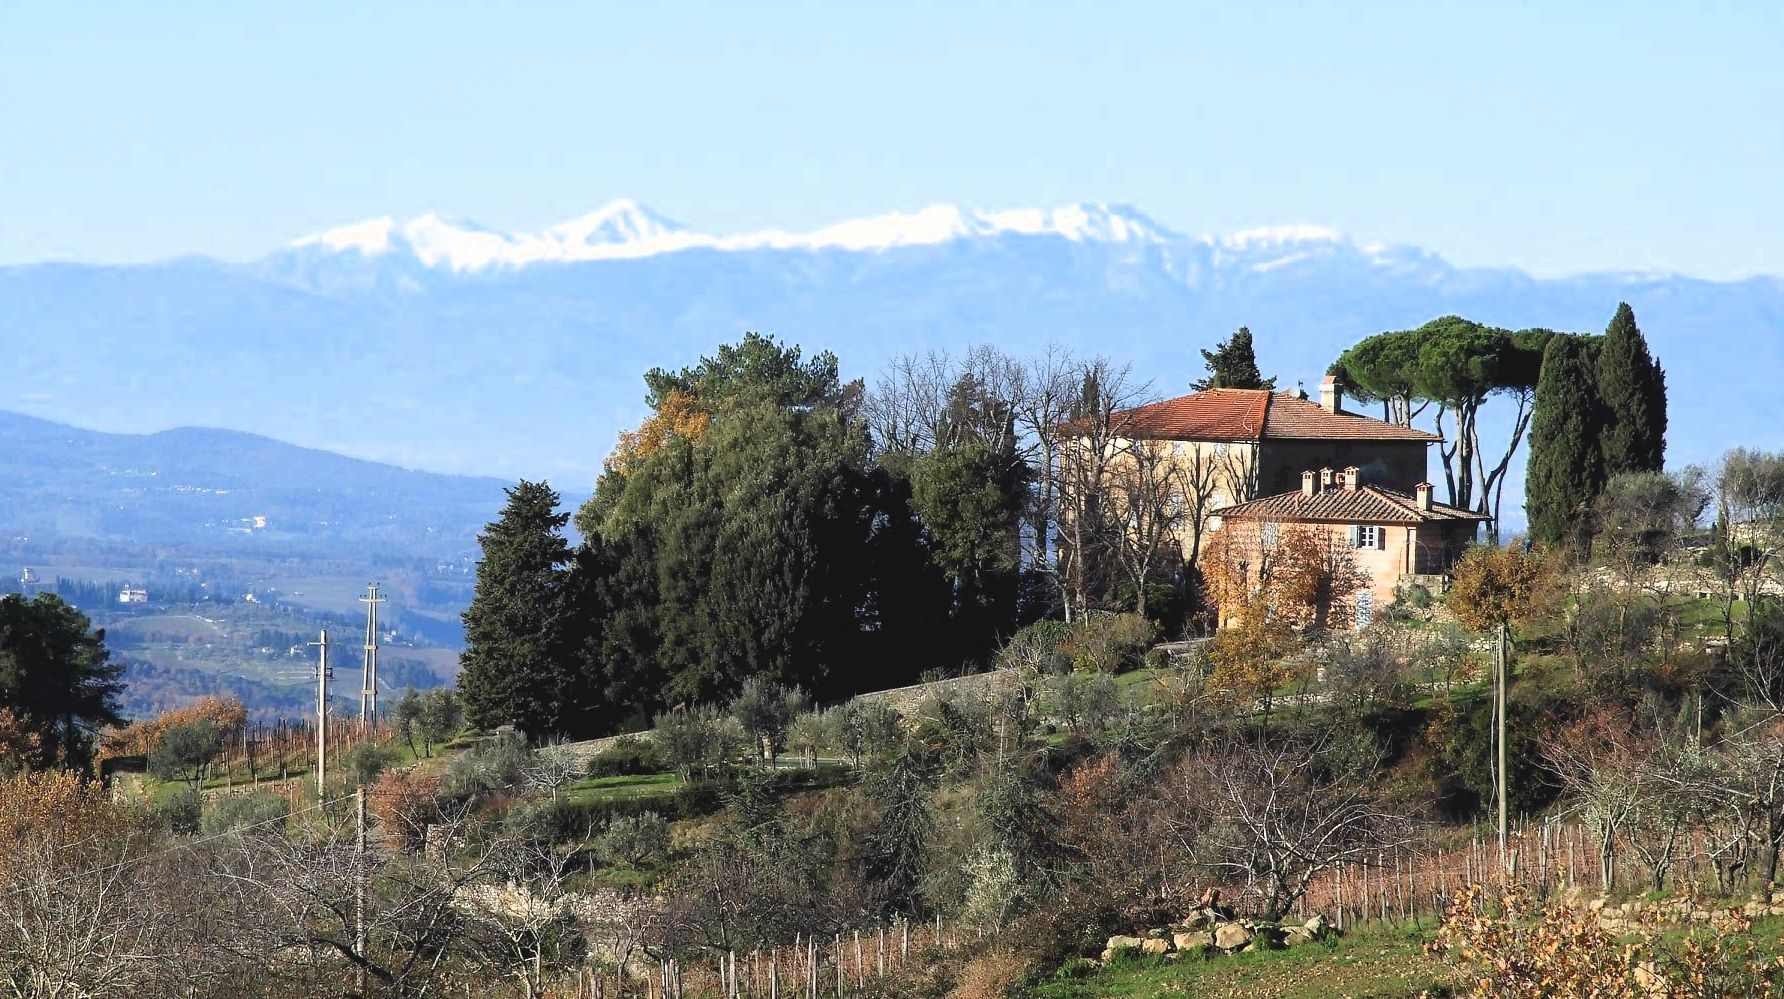 View of the Apuan Alps from Lamole in Chianti